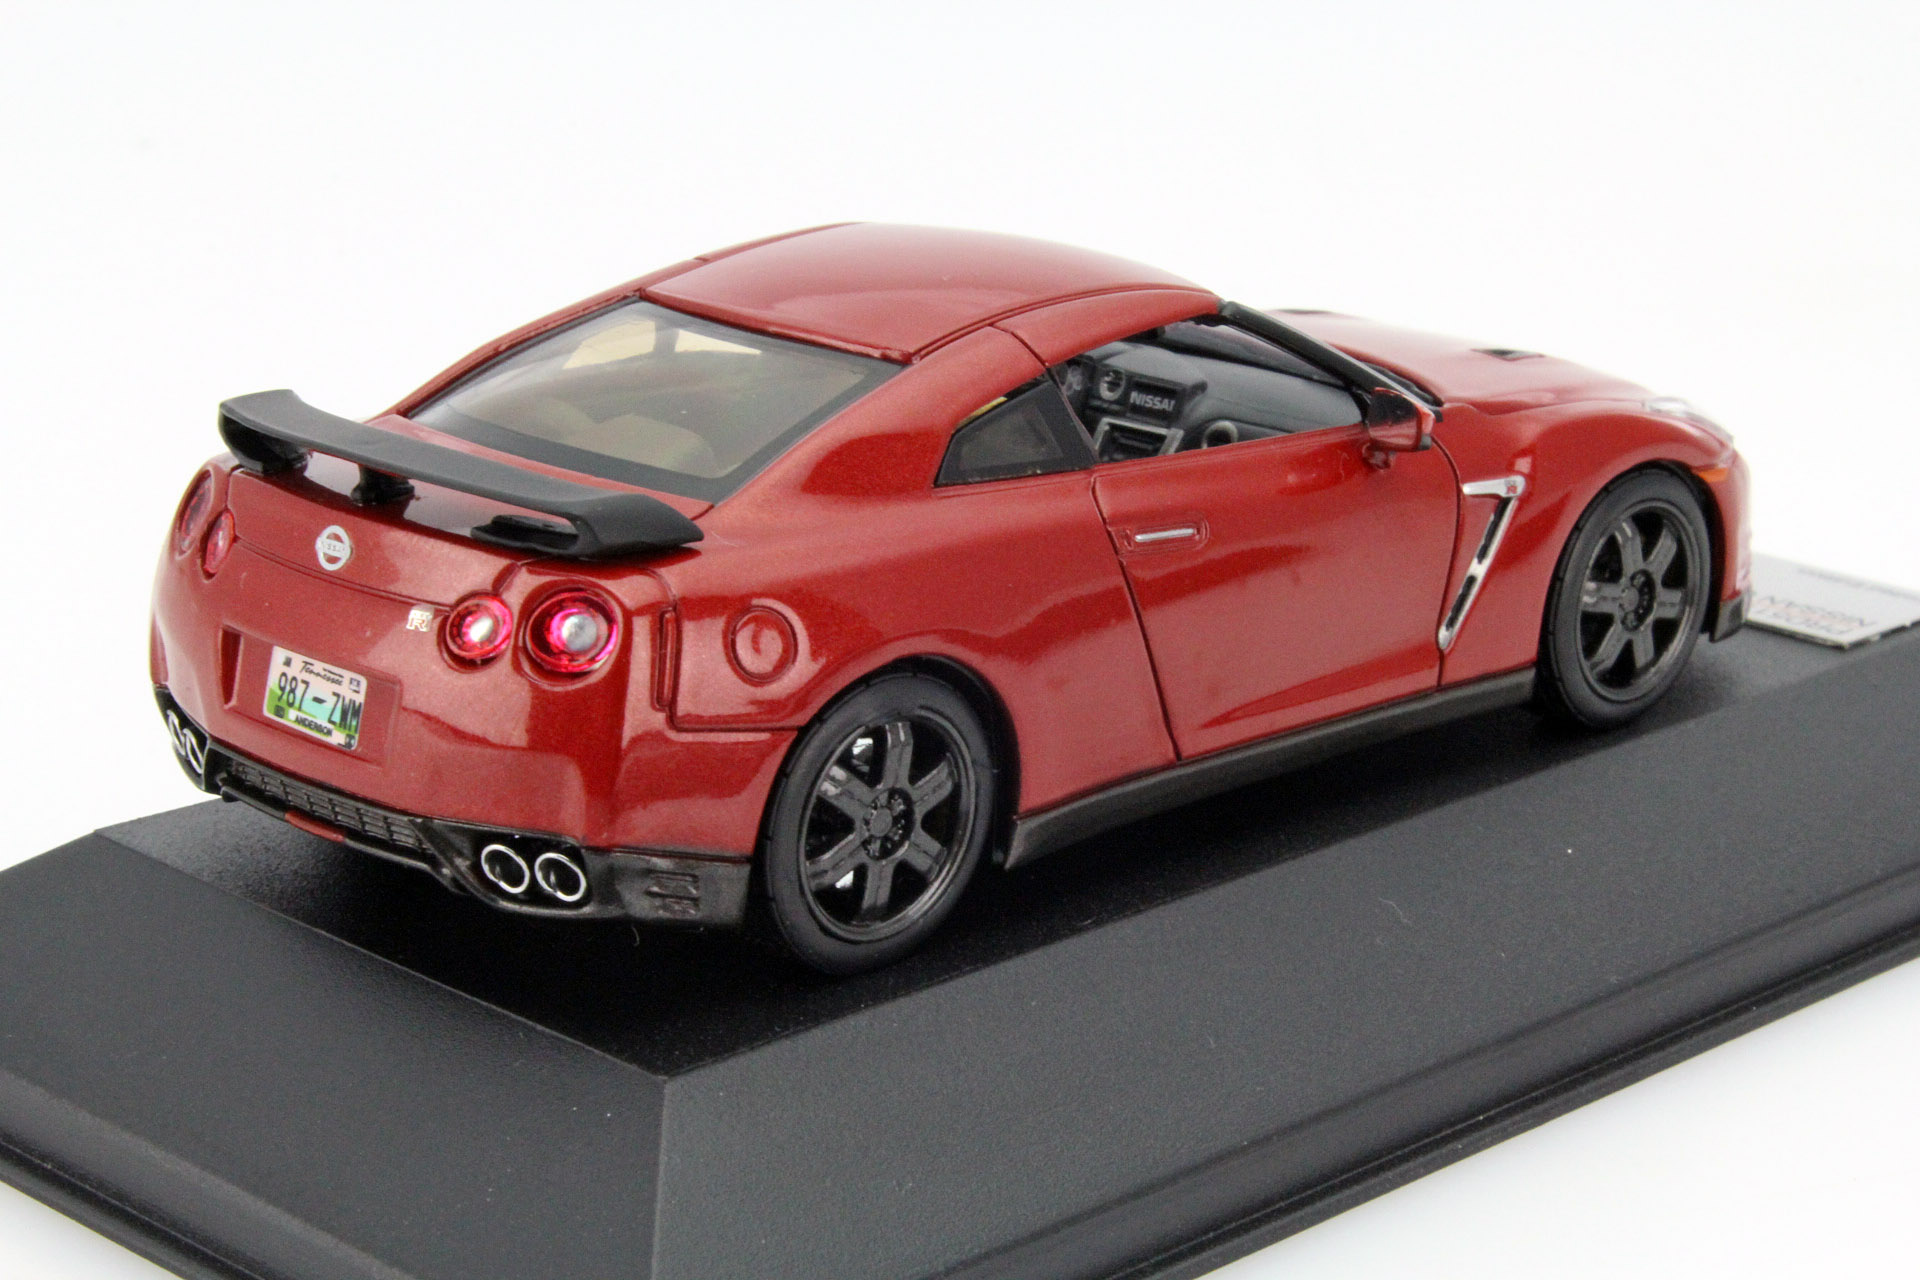 nissan gt r r35 black edition 2015 red die cast model. Black Bedroom Furniture Sets. Home Design Ideas